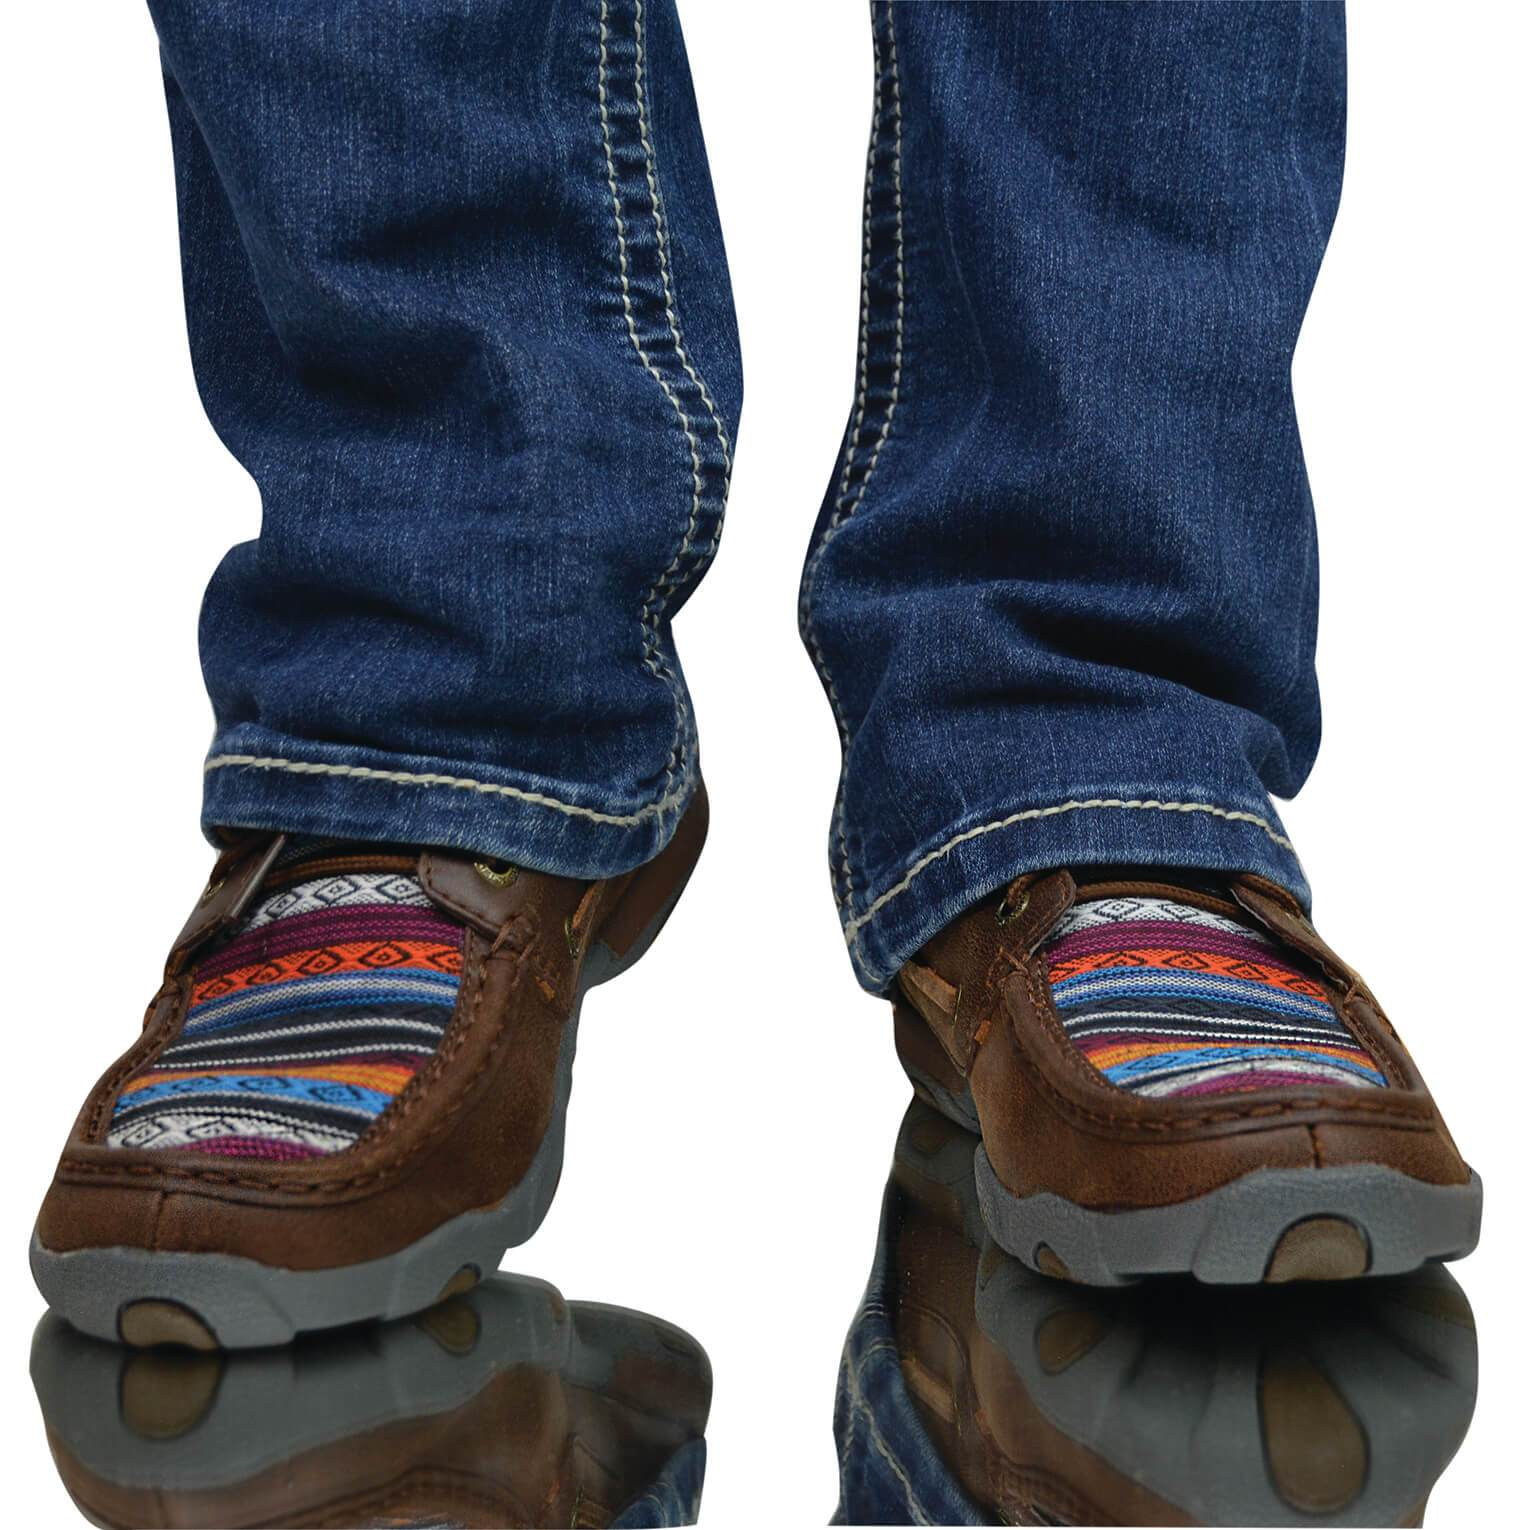 b2c2d4b4c8a Women's Twisted X Casual Driving Mocs Low Shoe Brown and Serape